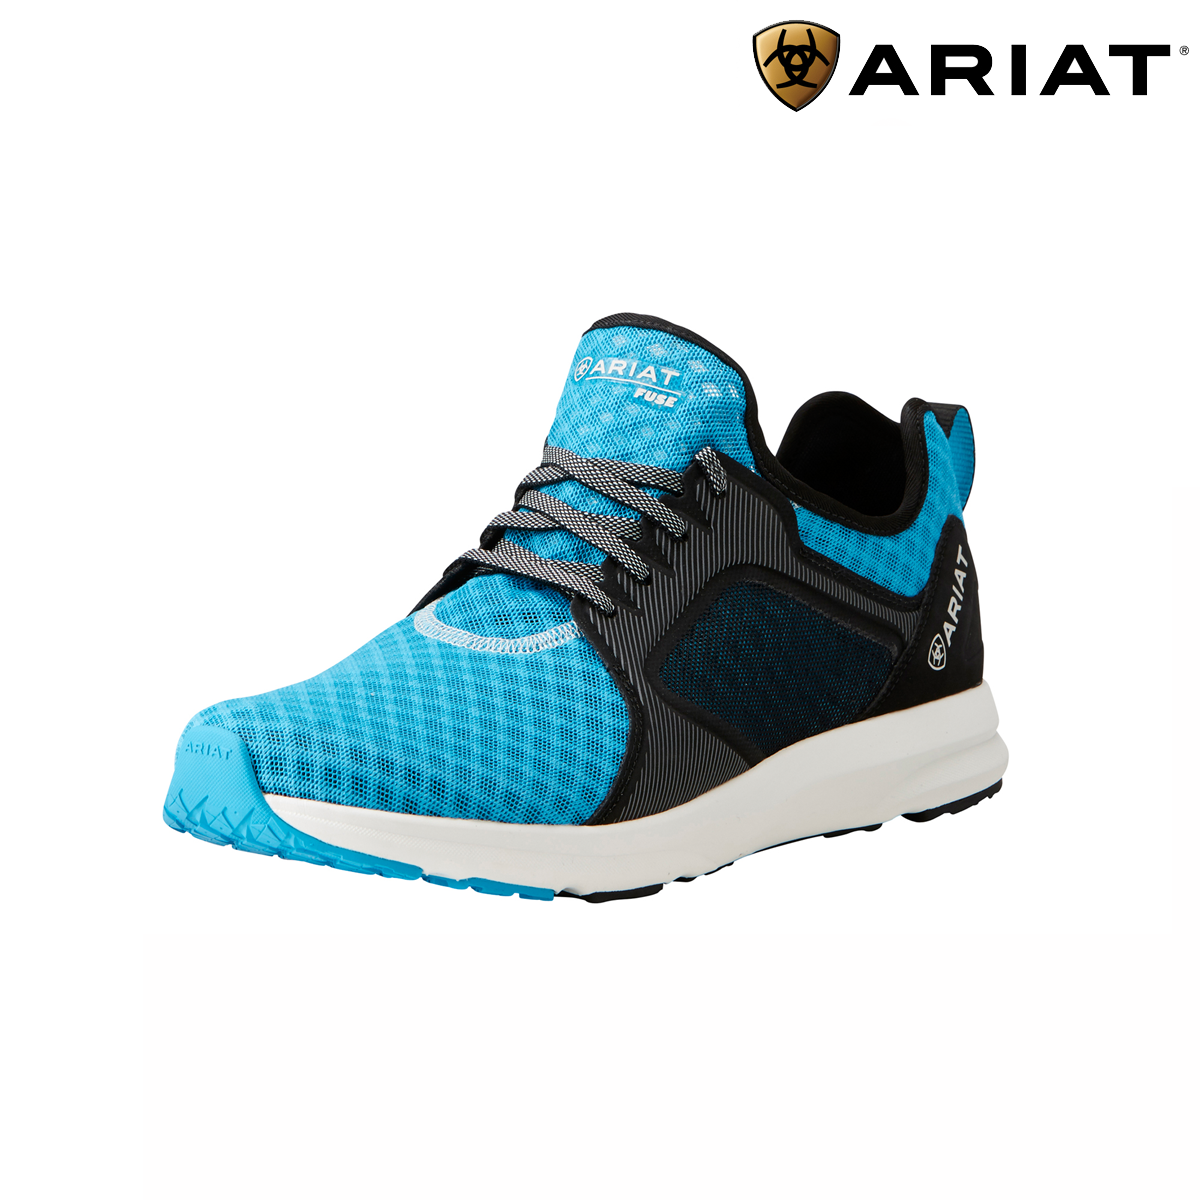 Ariat Mens Fuse Trainers - Highlighter Blau Mesh  FREE UK Shipping